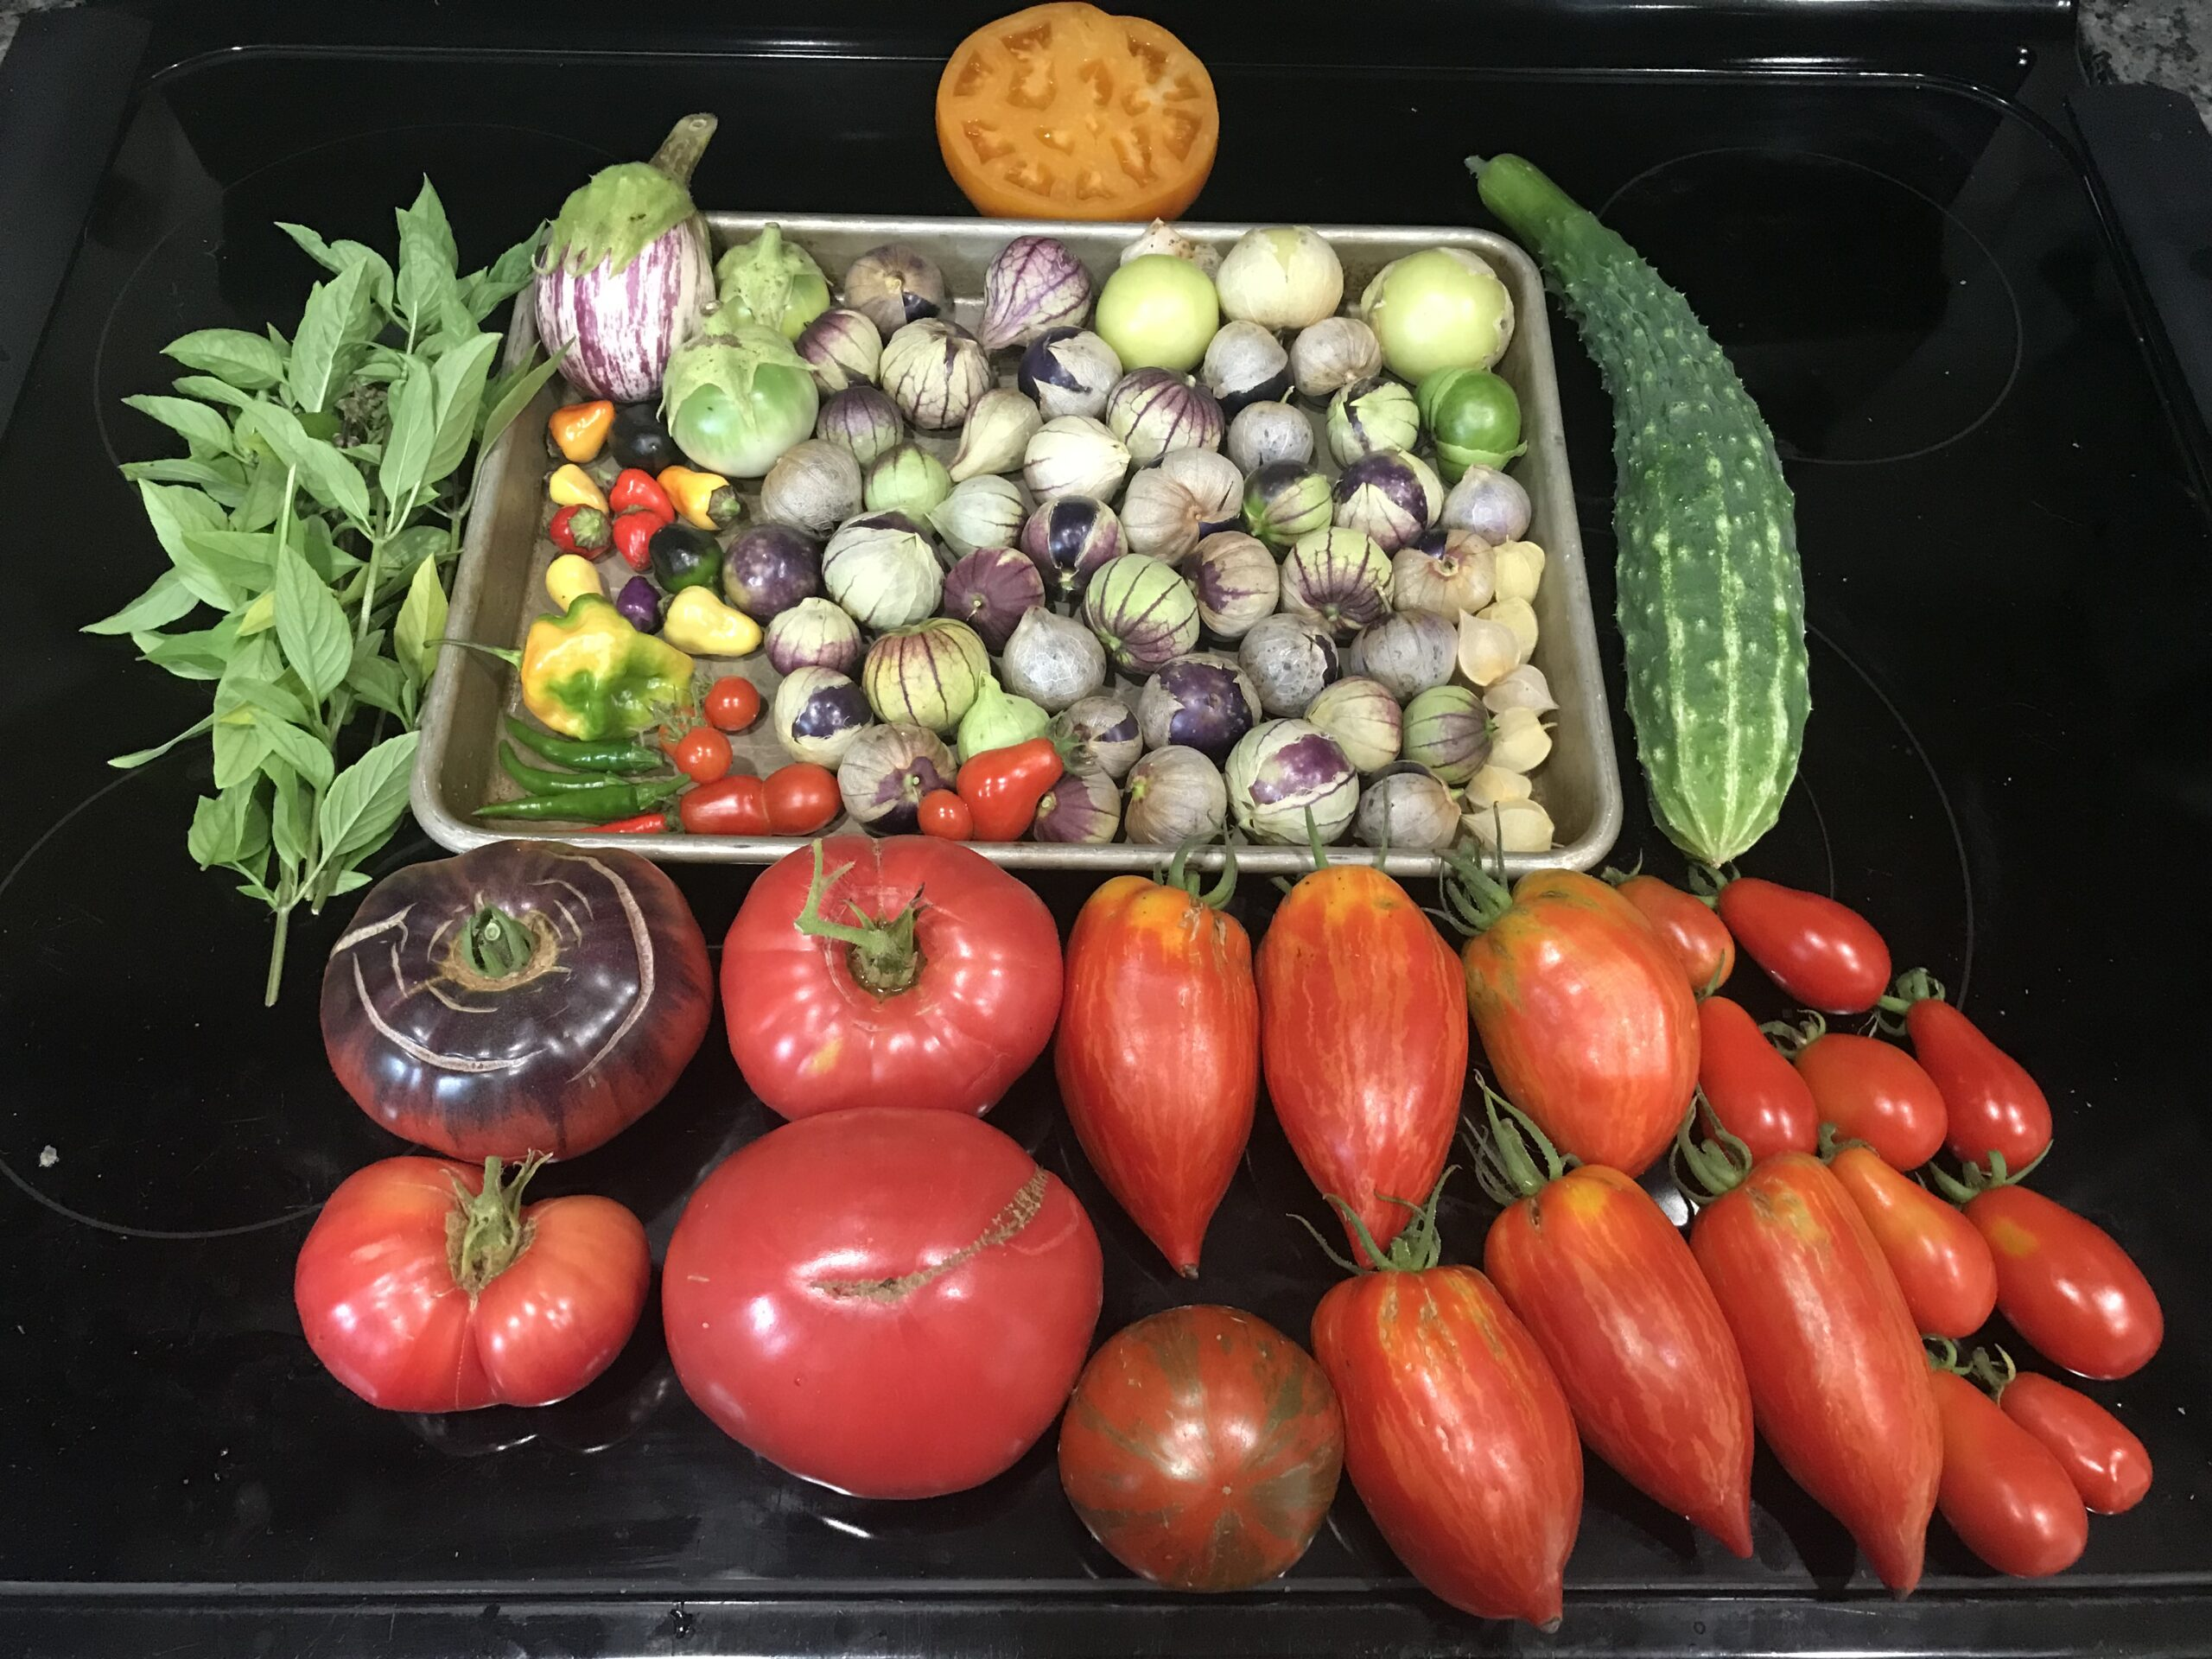 Picture of a bunch of different vegetables picked from the garden.